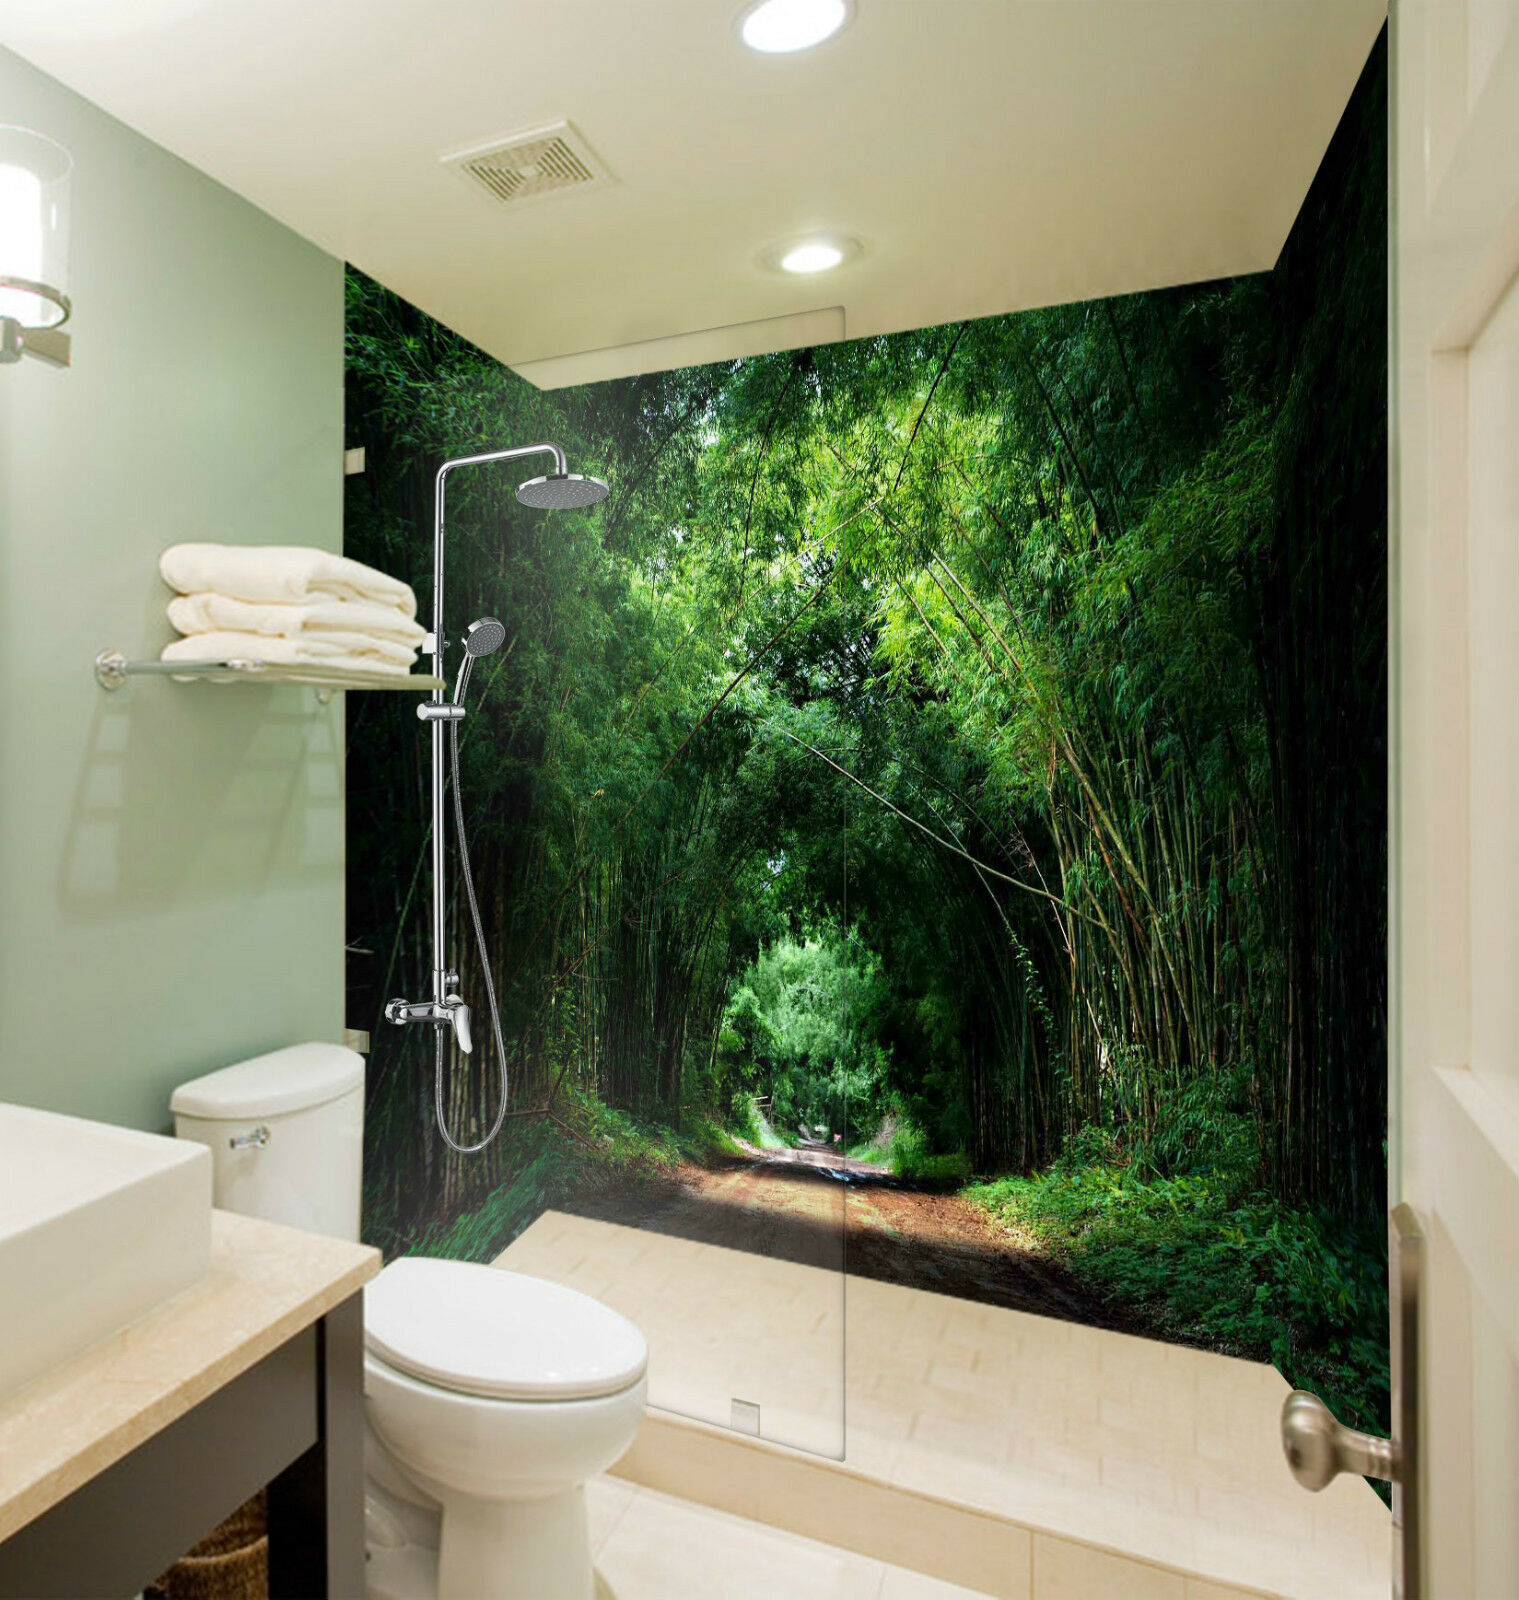 Wallpaper Murals For Bathrooms 3d Bamboos Road 153 Wallpaper Bathroom Print Decal Wall Deco Deco